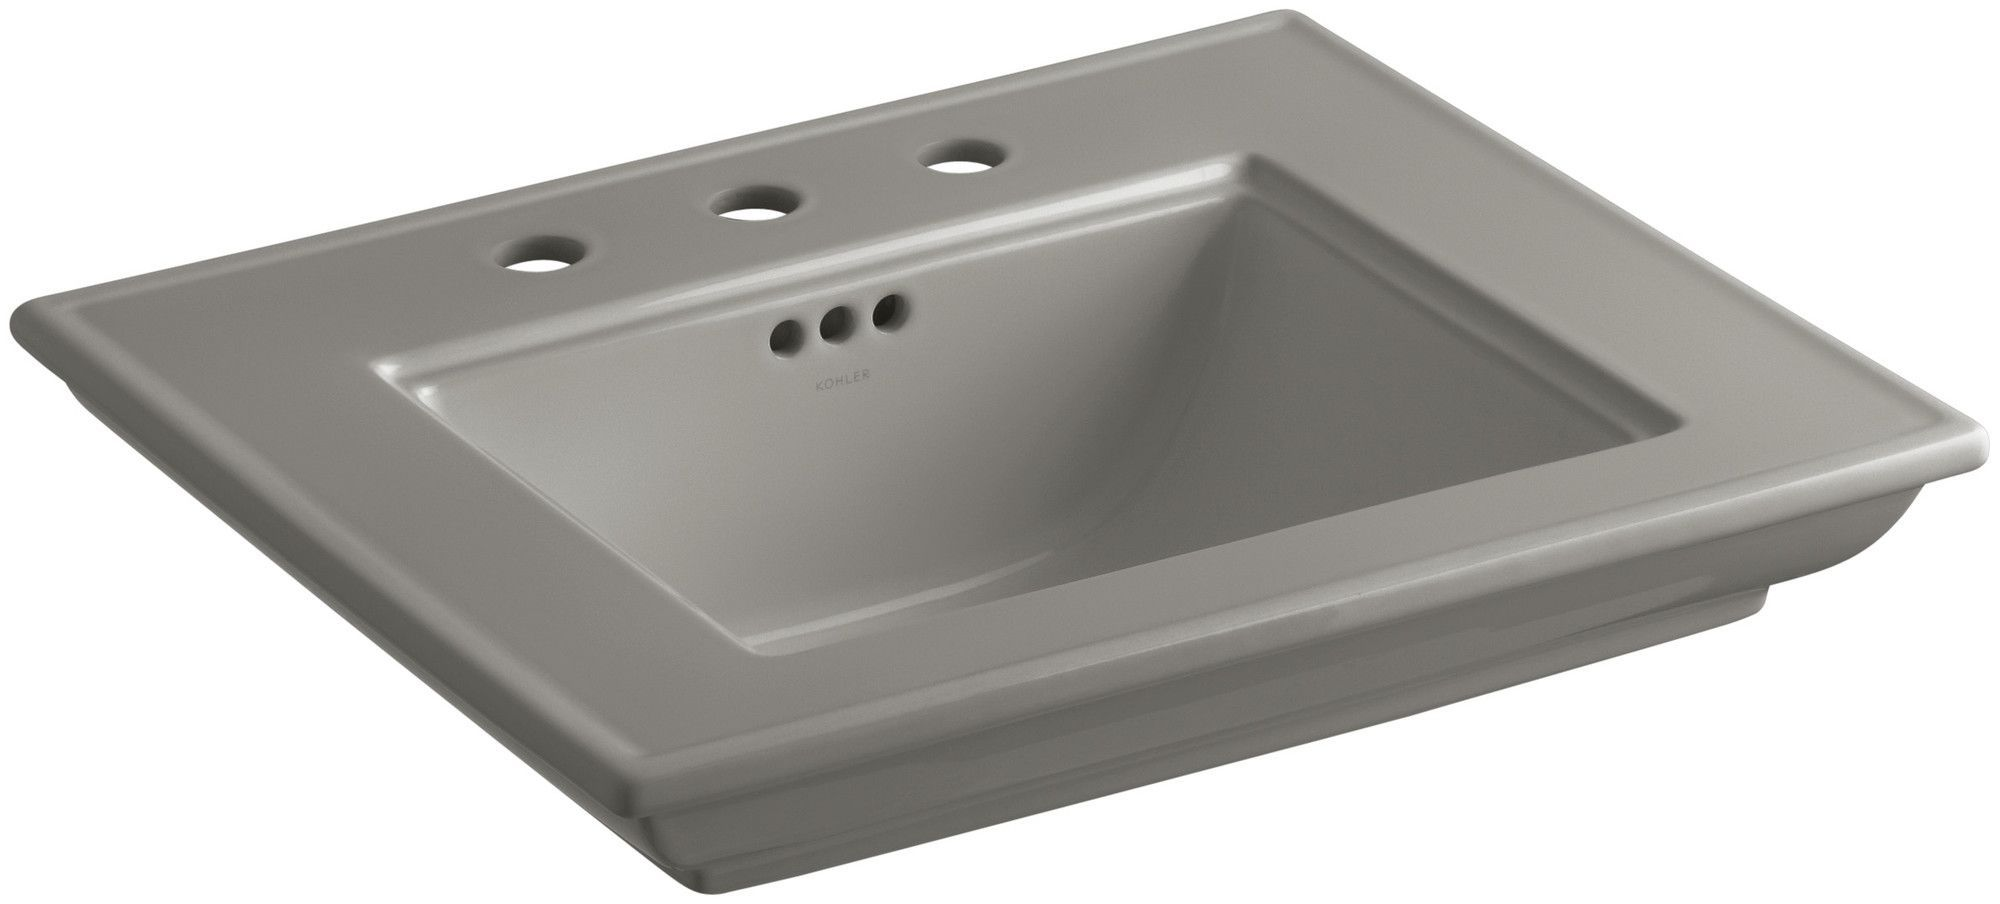 "Memoirs Stately Bathroom Sink Basin with 8"" Widespread Faucet Holes"